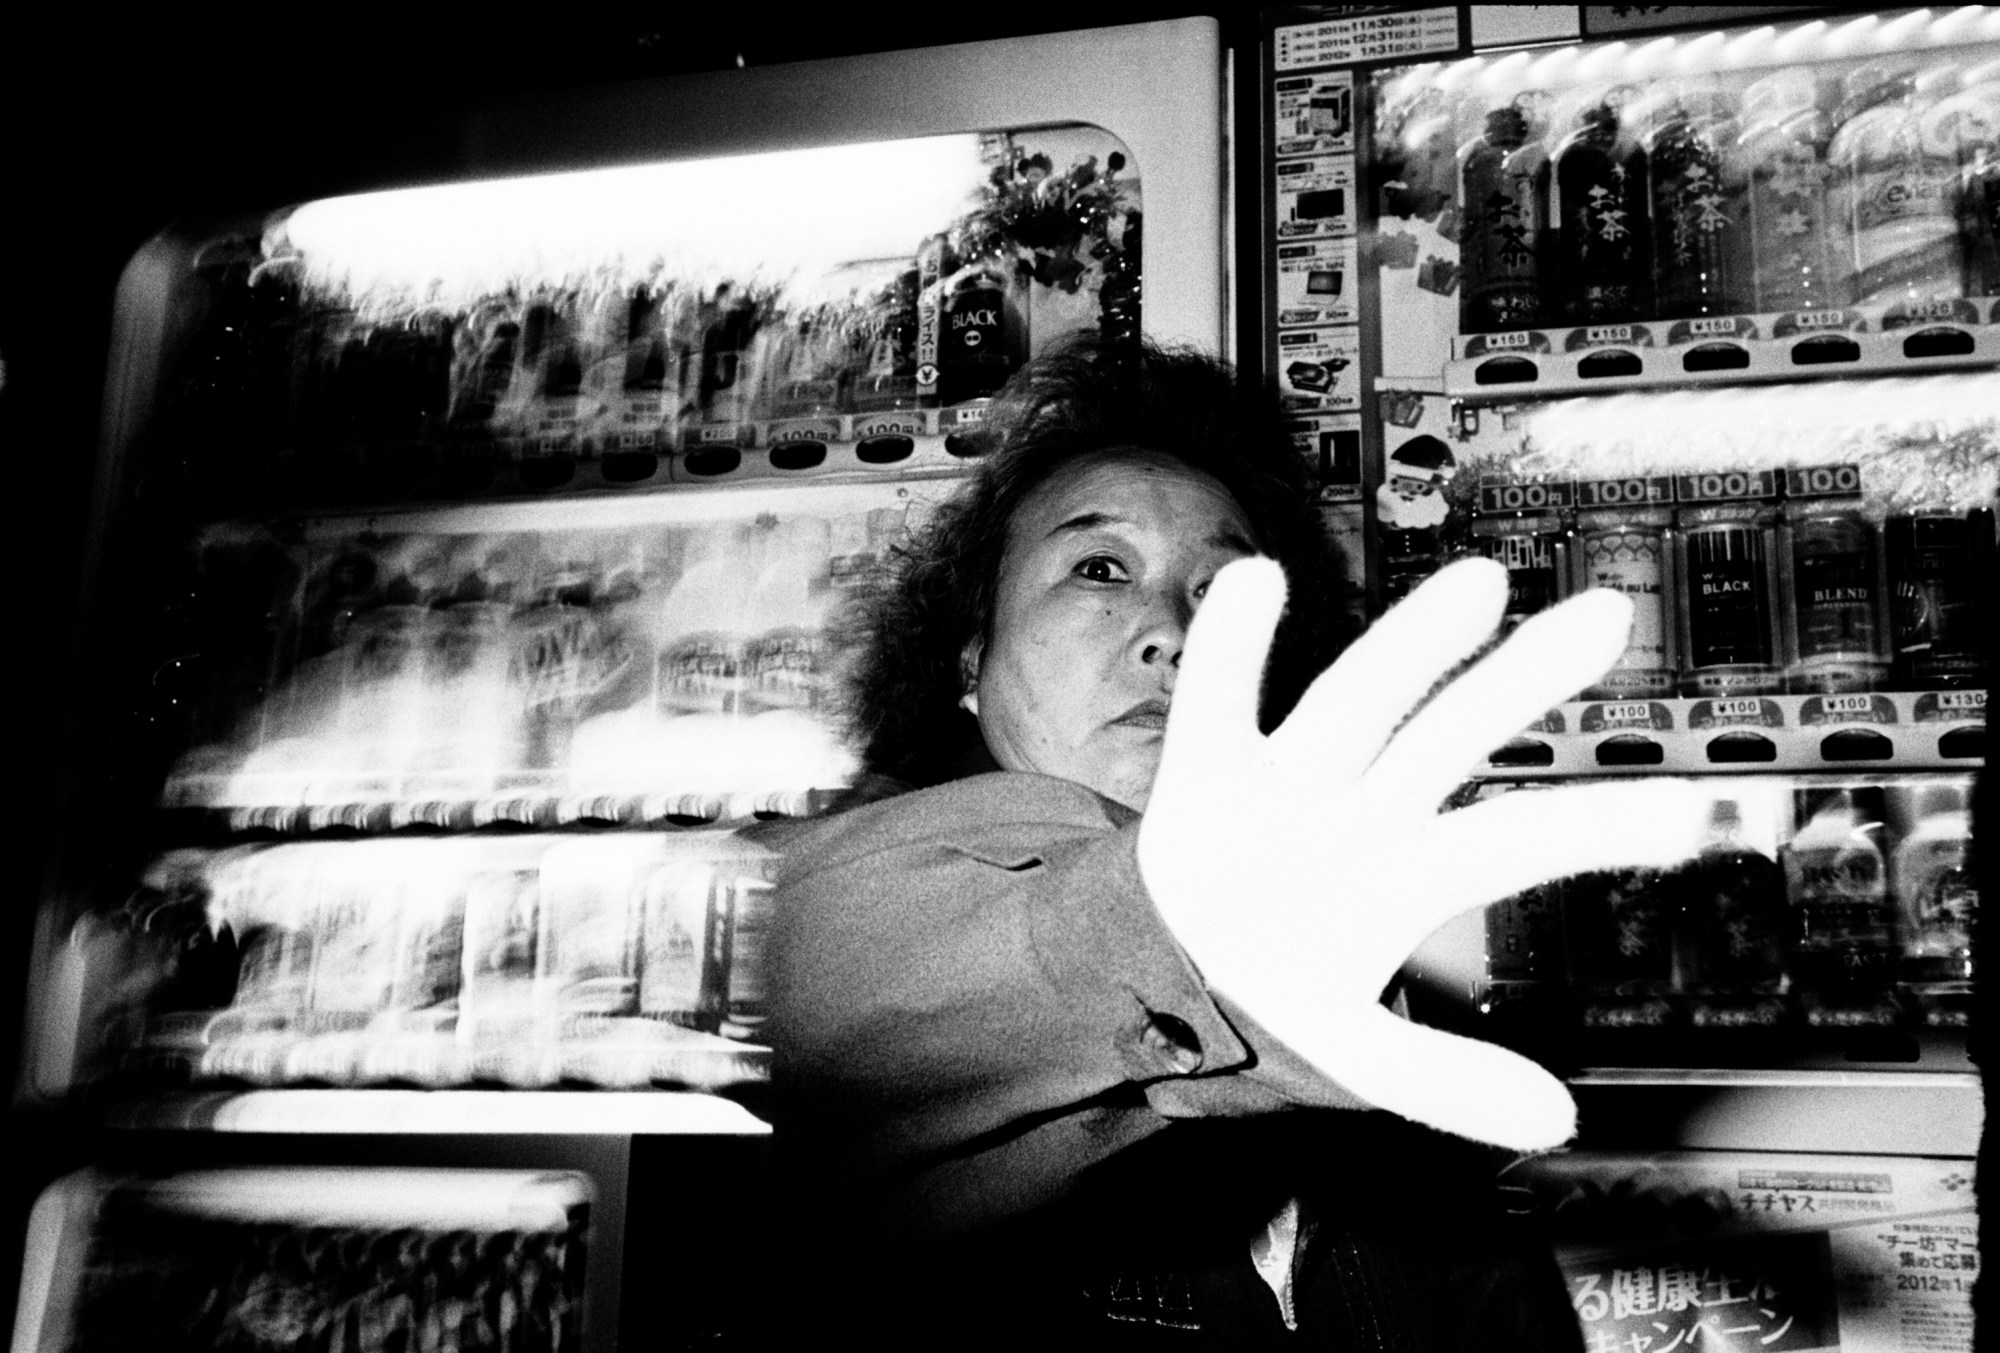 Tokyo woman with hand. 1.2 meters, flash, Kodak Tri-X 400, Leica M6, 35mm